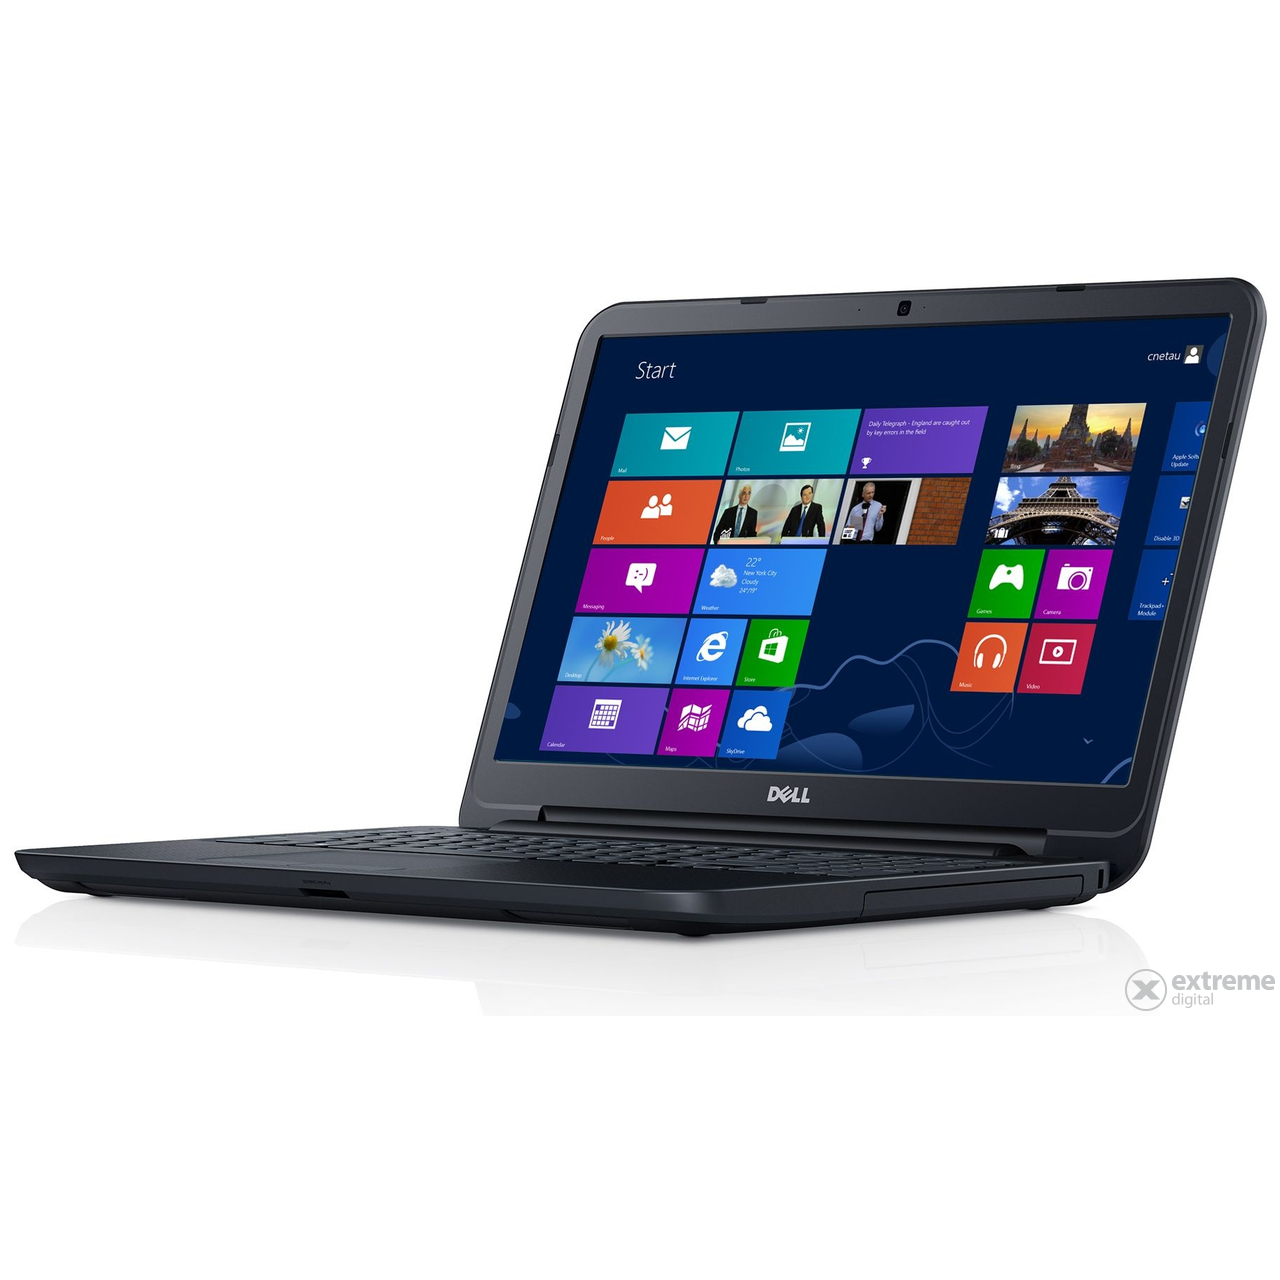 dell-inspiron-3541-168905-notebook-windows-8-1-fekete_3a0c426e.jpg